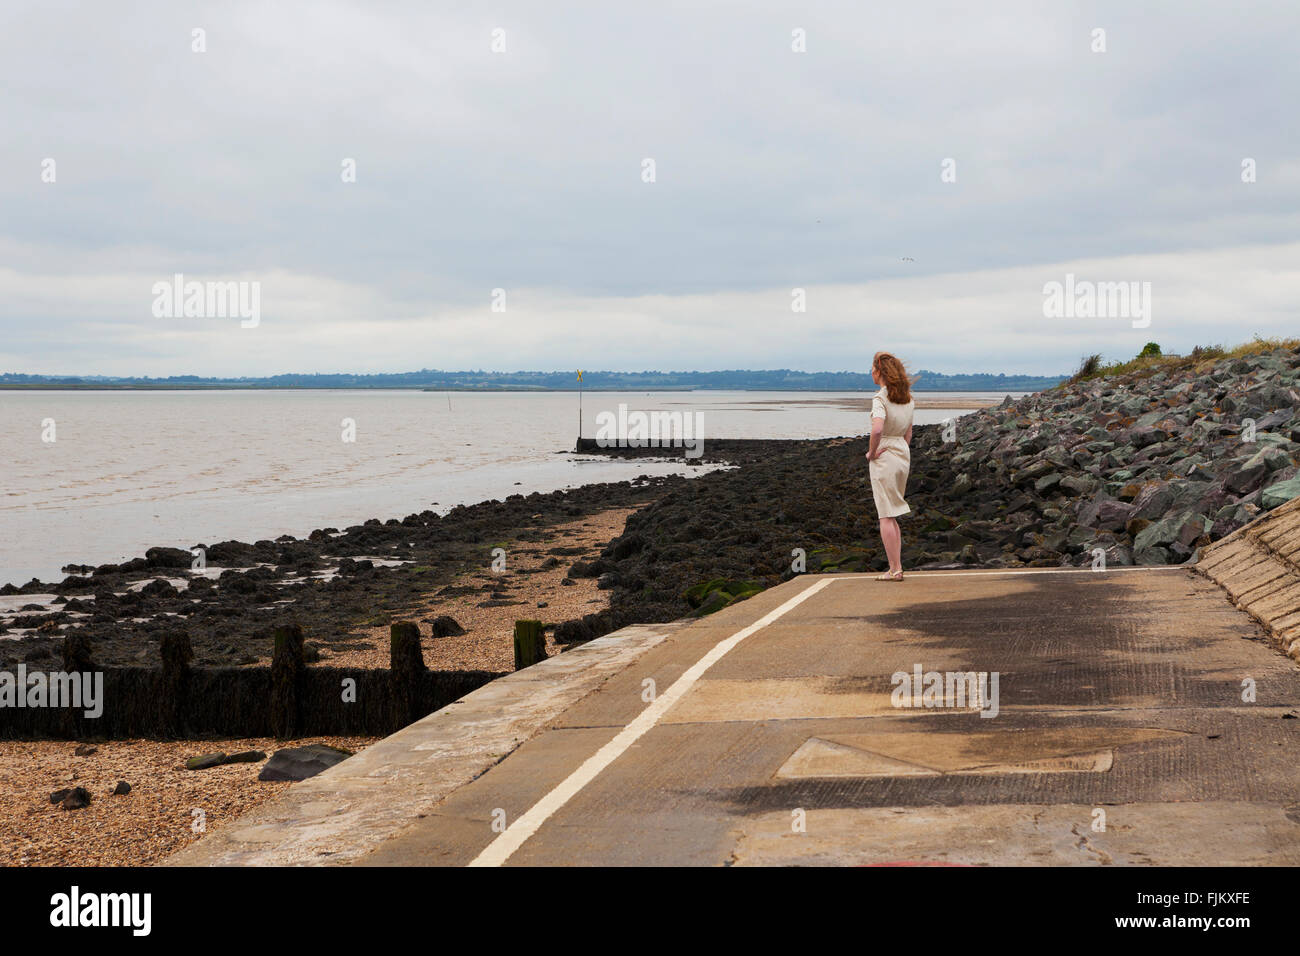 Estuary of the River Colne at Brightlingsea, Essex - Stock Image